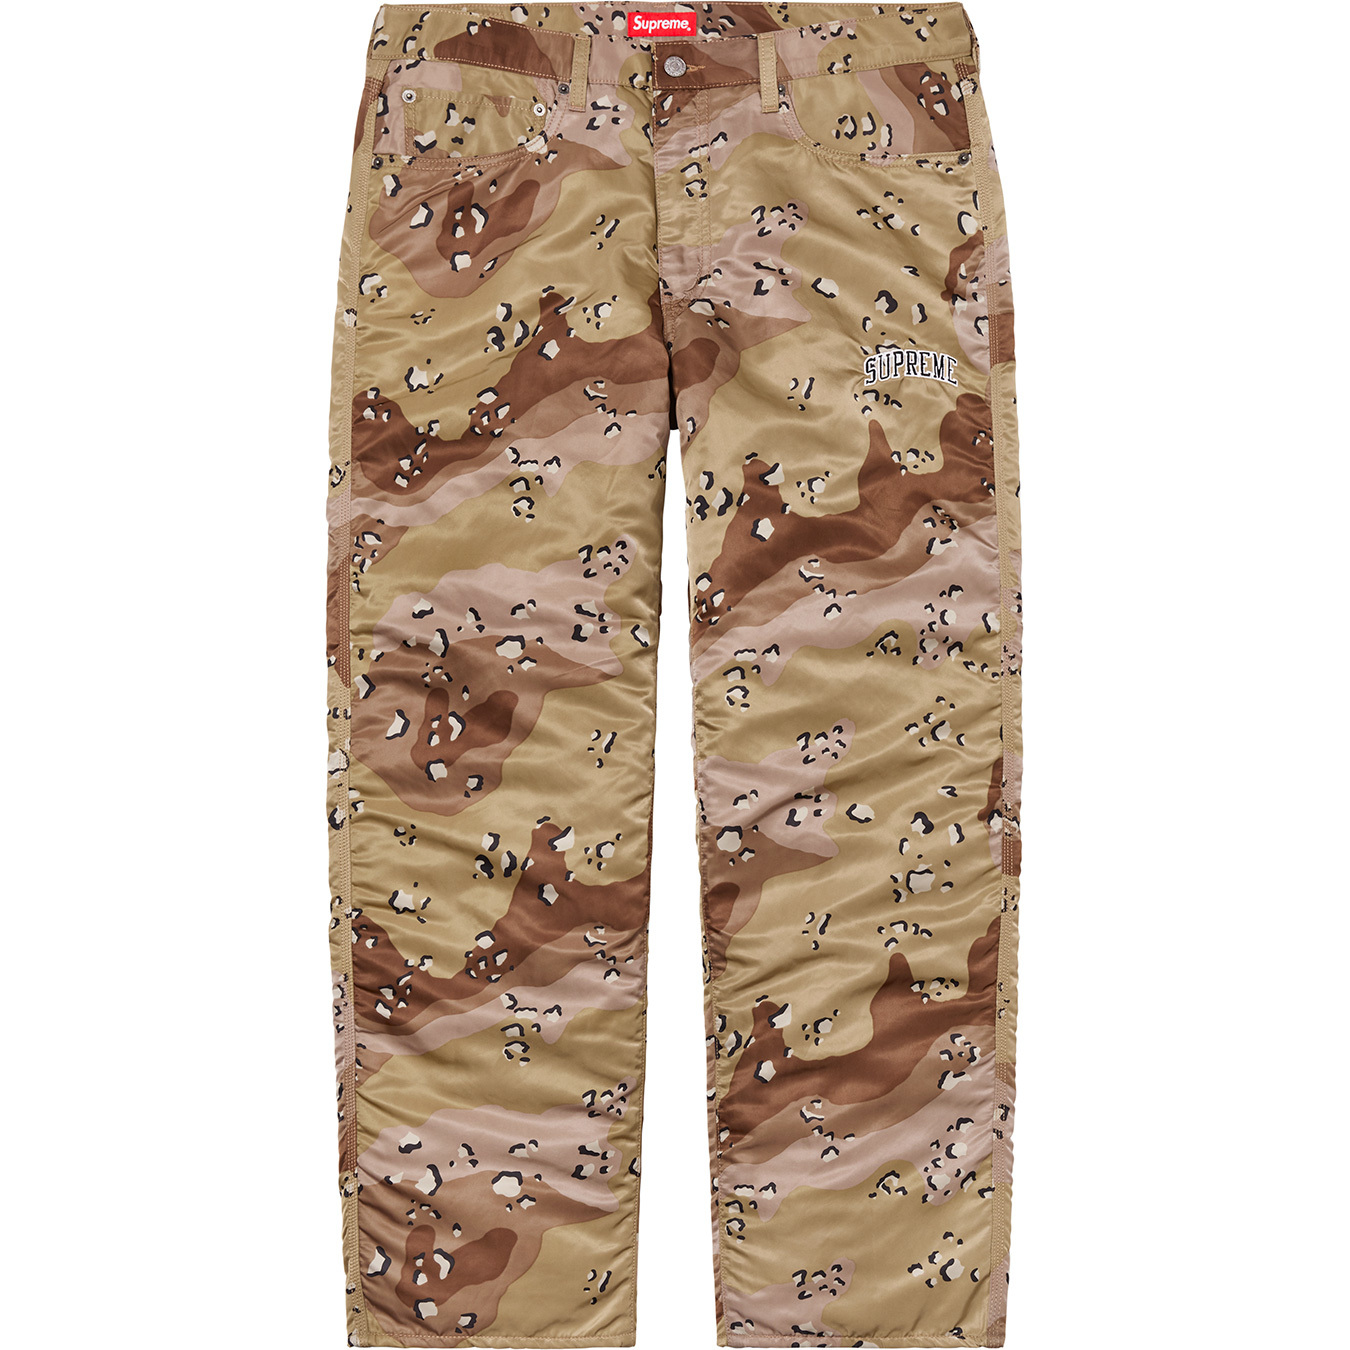 supreme-levis-19aw-19fw-collaboration-release-20191026-week9-nylon-pant